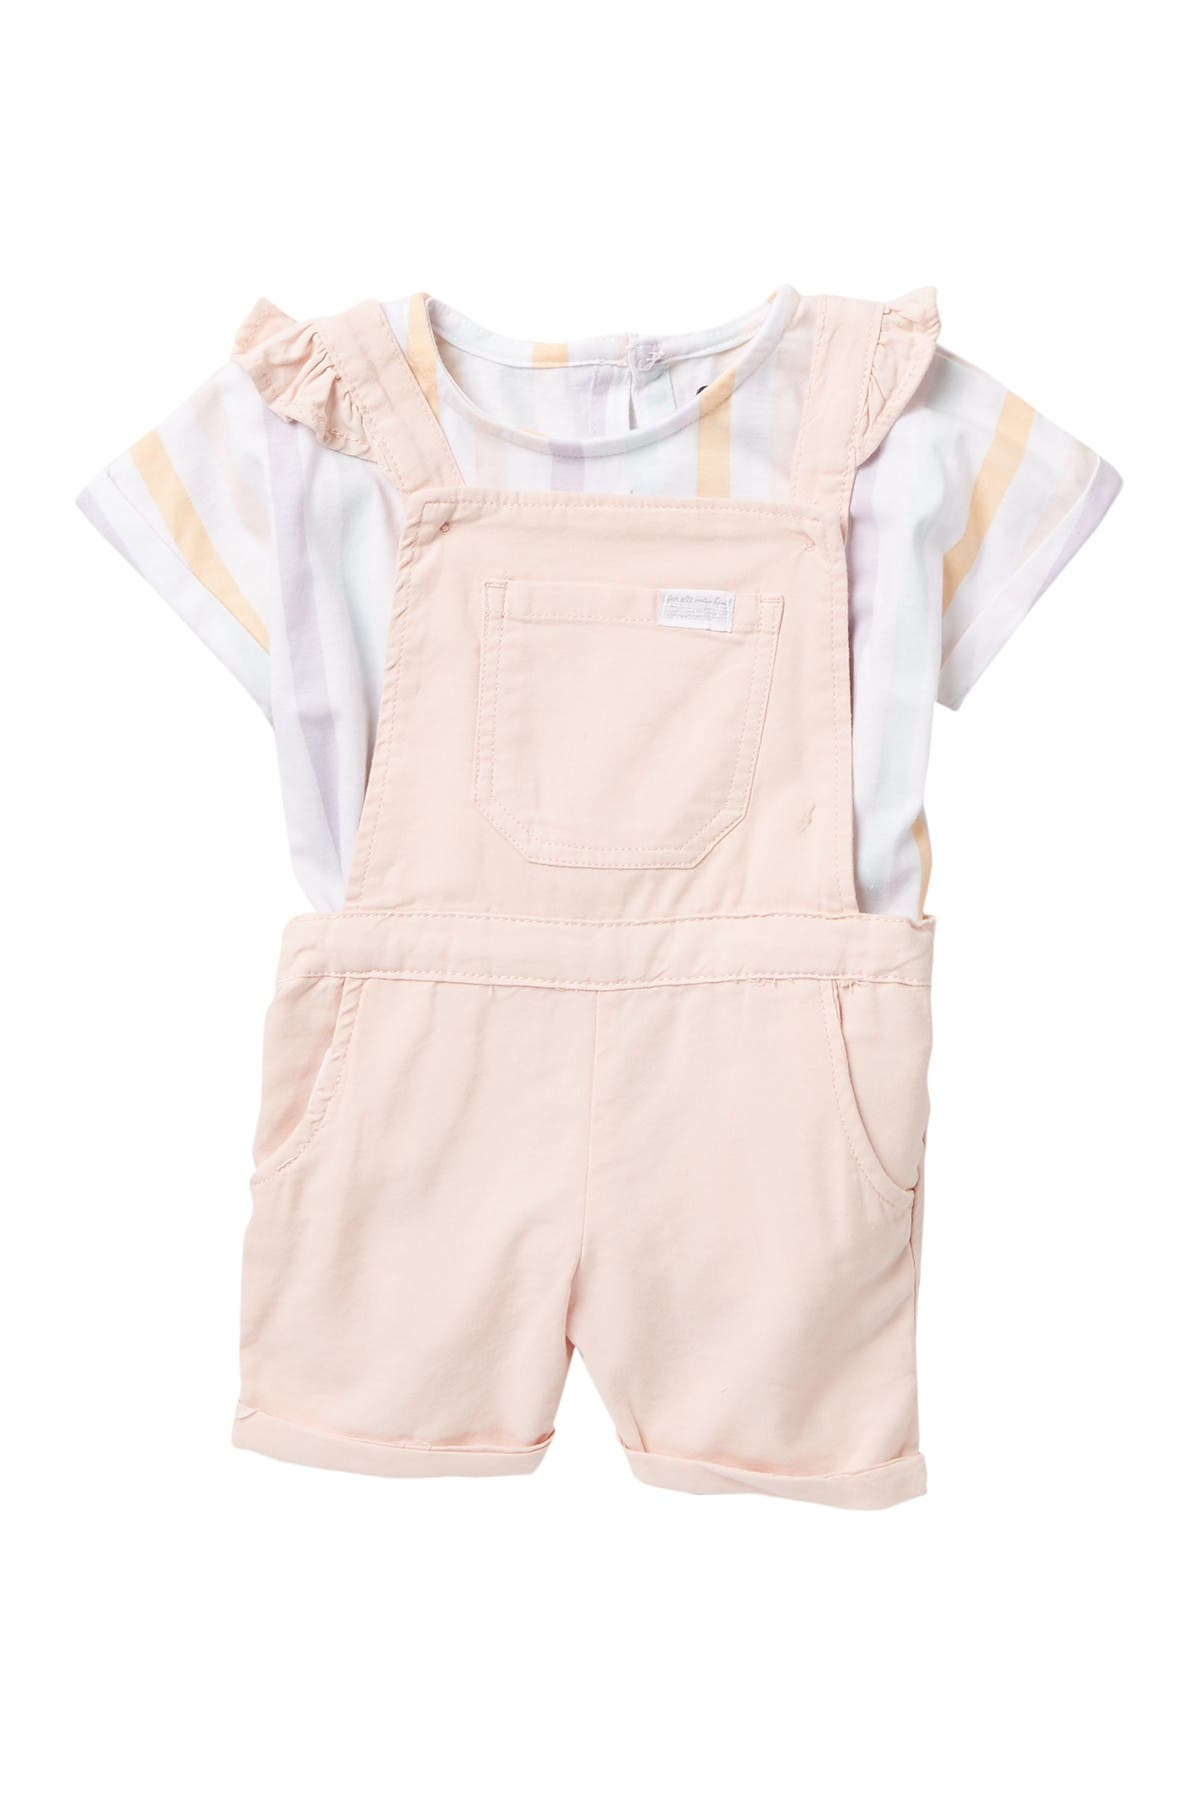 Image of 7 For All Mankind Ruffle Shortall & Striped Top Set